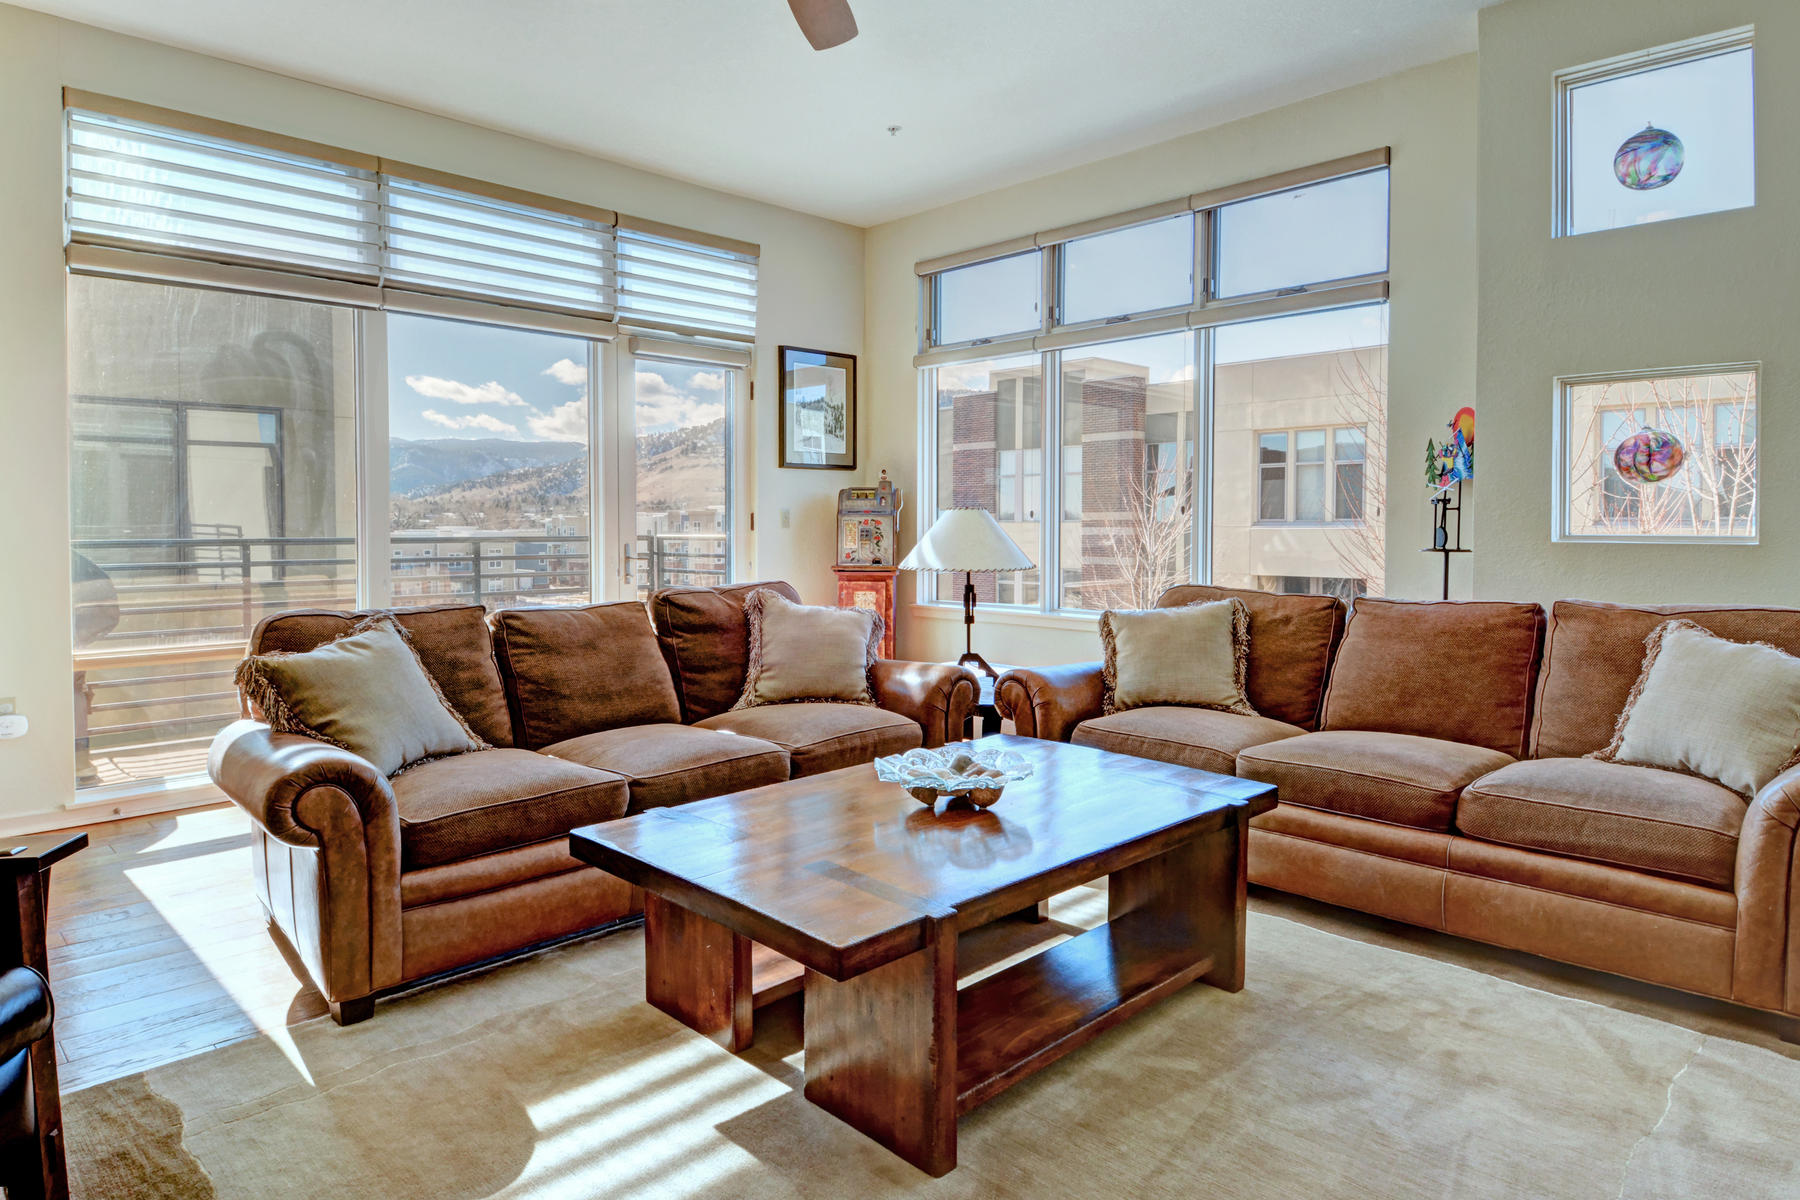 Townhouse for Active at Urban Living At It's Finest 1310 Rosewood Ave 5-C Boulder, Colorado 80304 United States